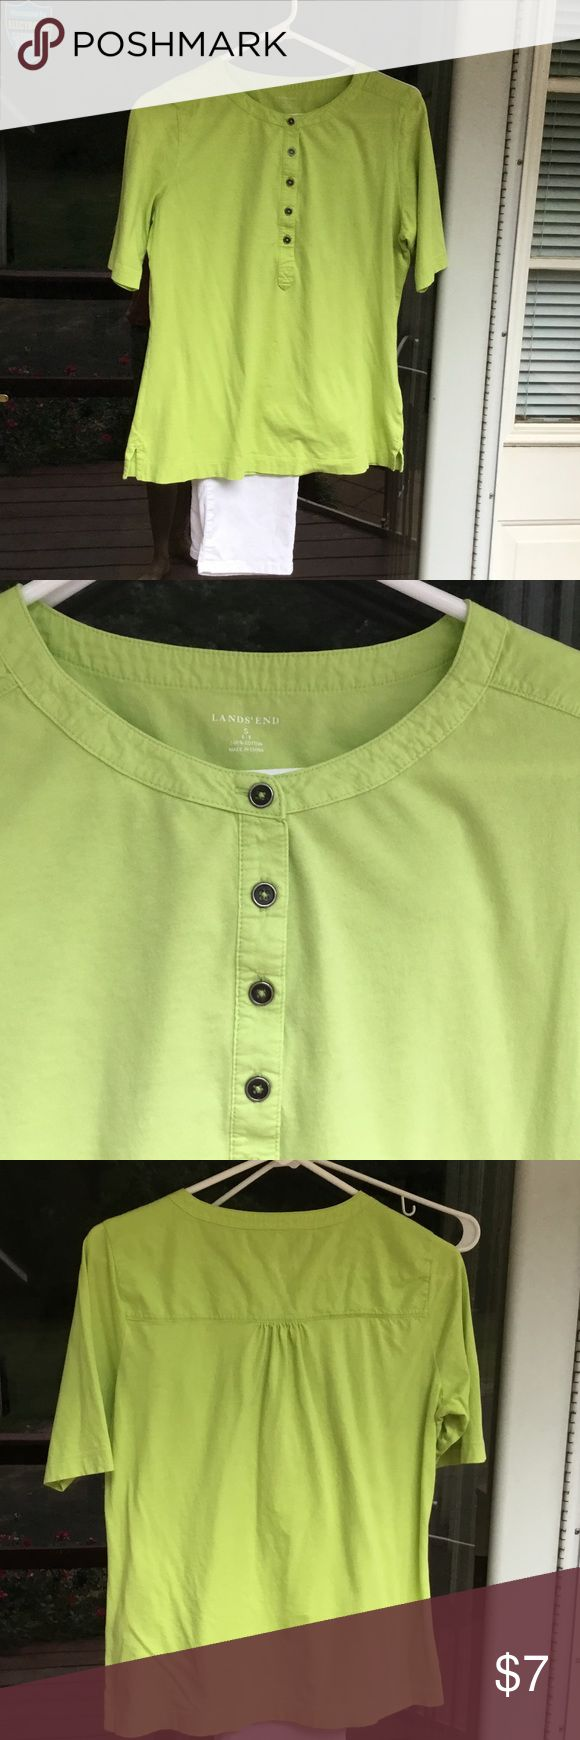 Land's End lime green shirt Very cute Land's End shirt that is in excellent condition but too big for me.  Material is 100% cotton.  Shirt is very soft and comfortable.  Measures 24 1/2 inches in length, width is 19 inches. Lands' End Tops Tees - Short Sleeve